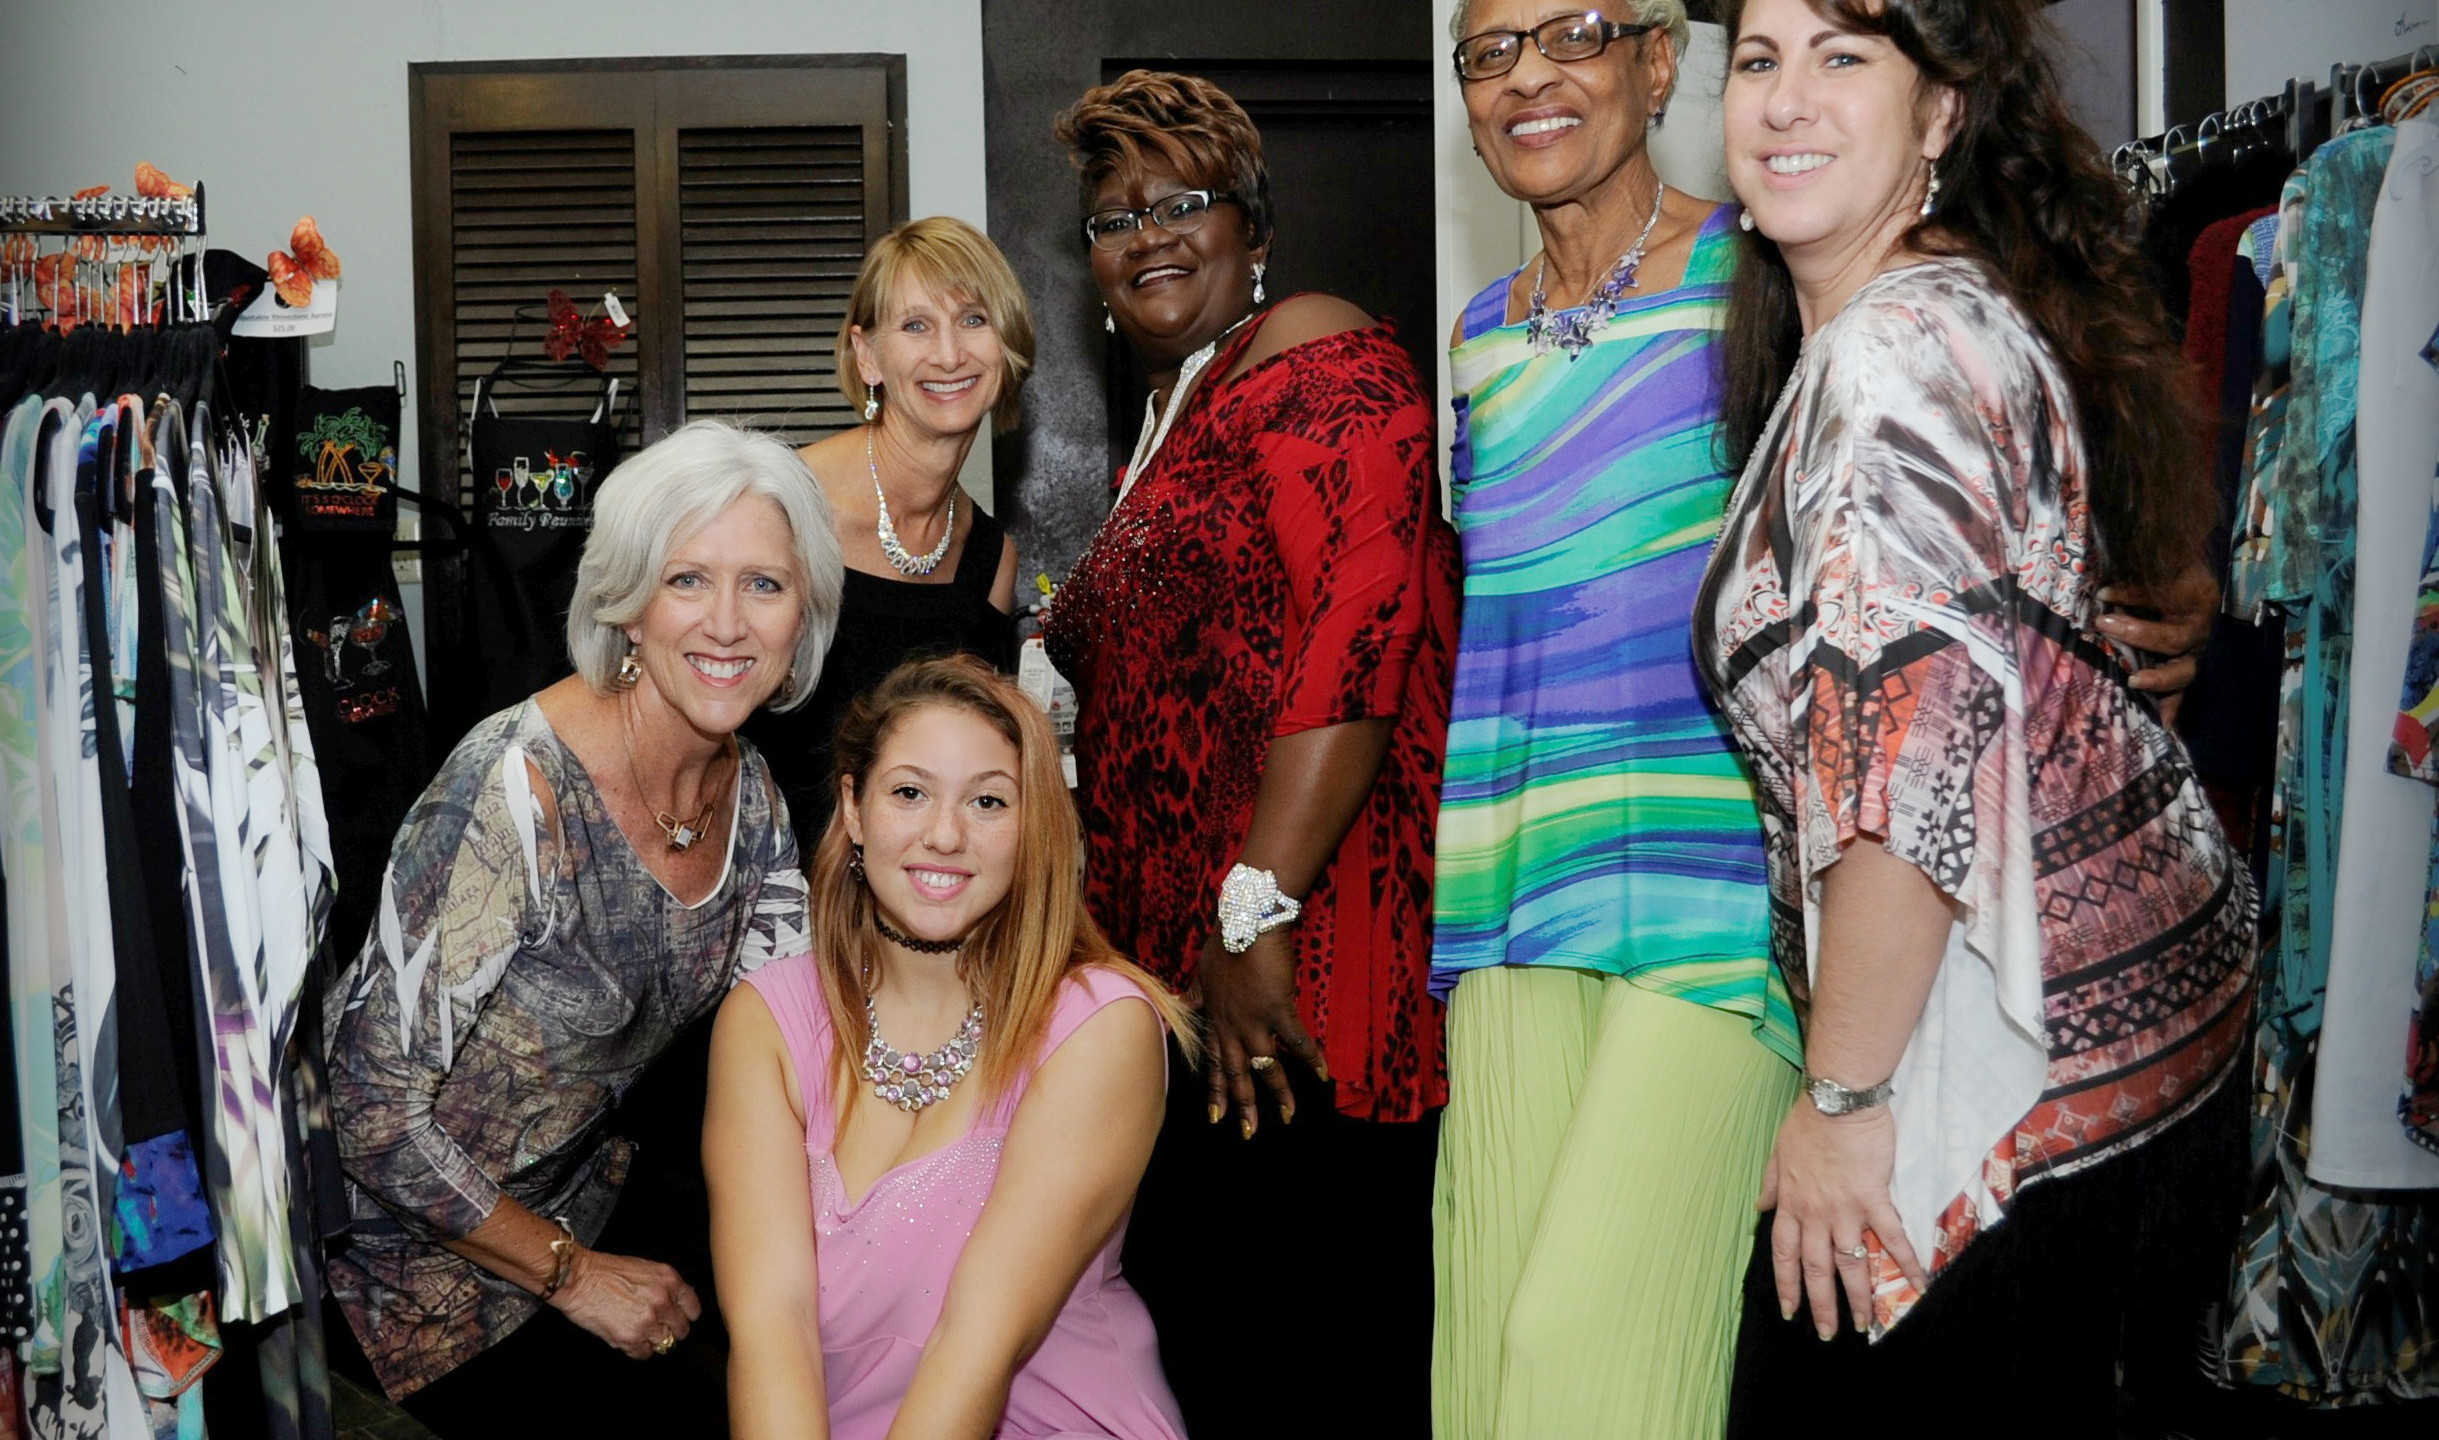 Shara Brodsky (right), Design Consultant at Chez Jacqueline Gift Shop with fashion show models behind the scenes